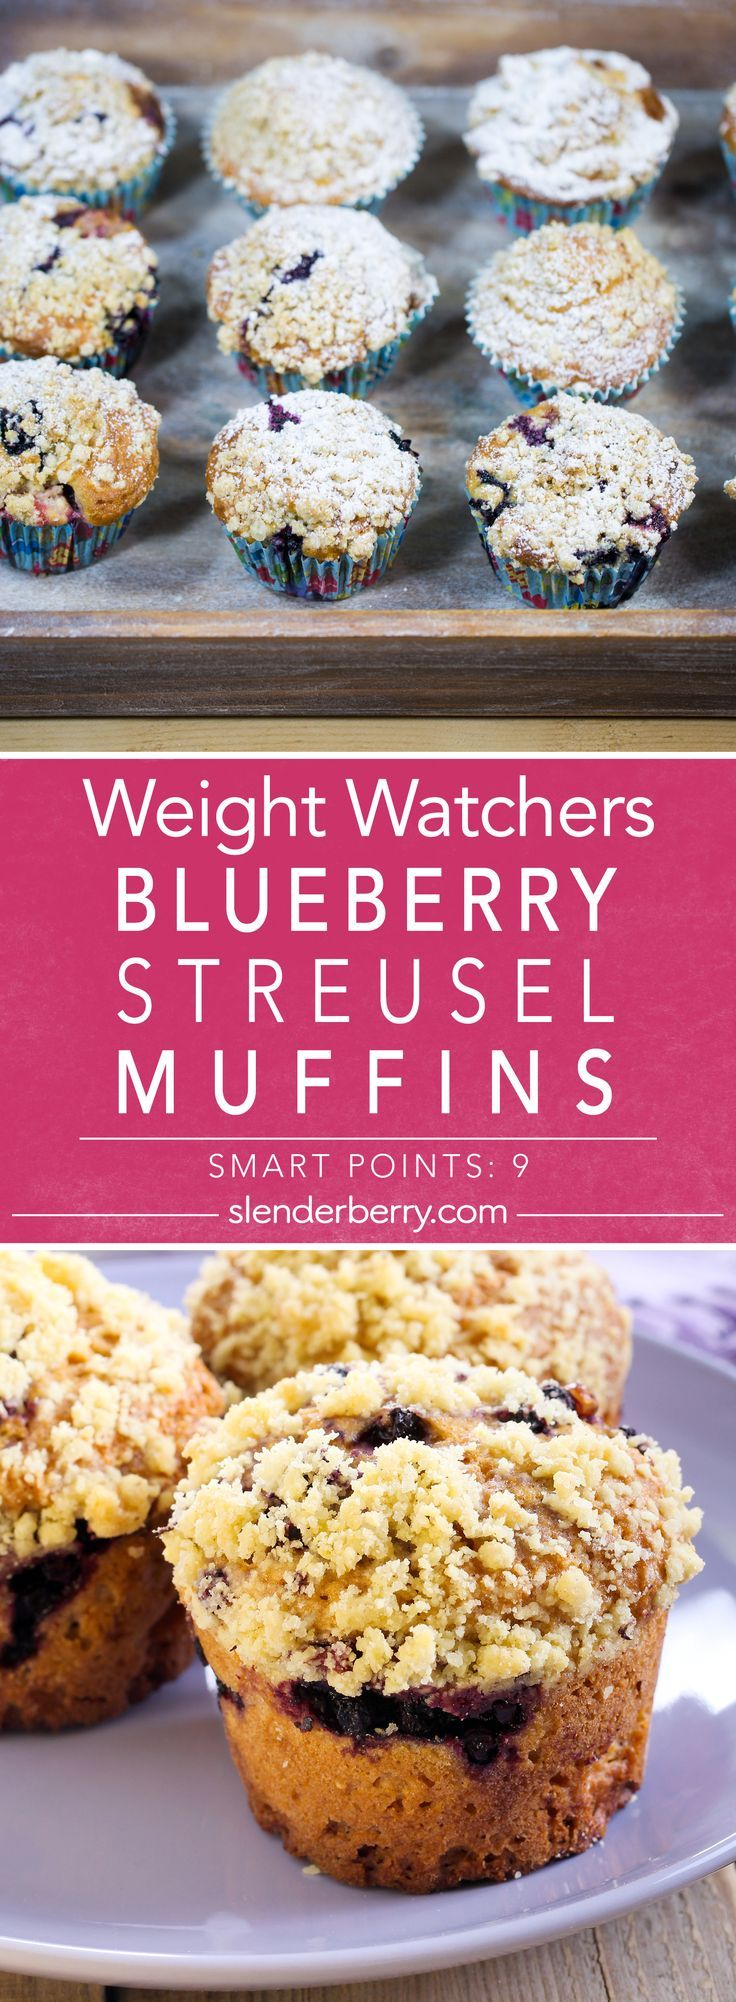 Blueberry streusel muffins recipe blueberry streusel